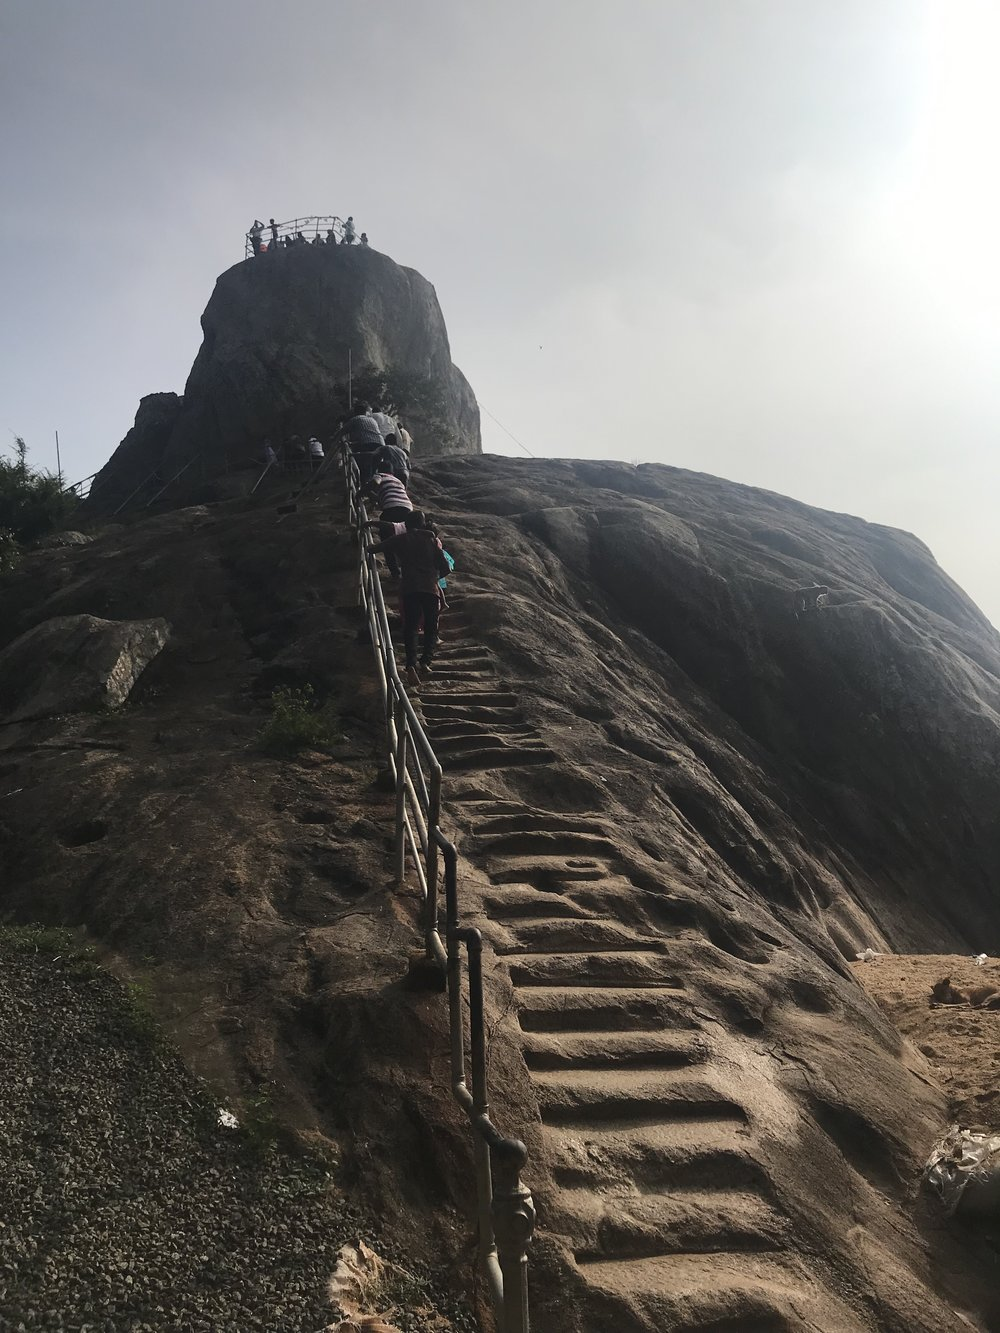 The start of the climb to the top of Aradhana Gala.